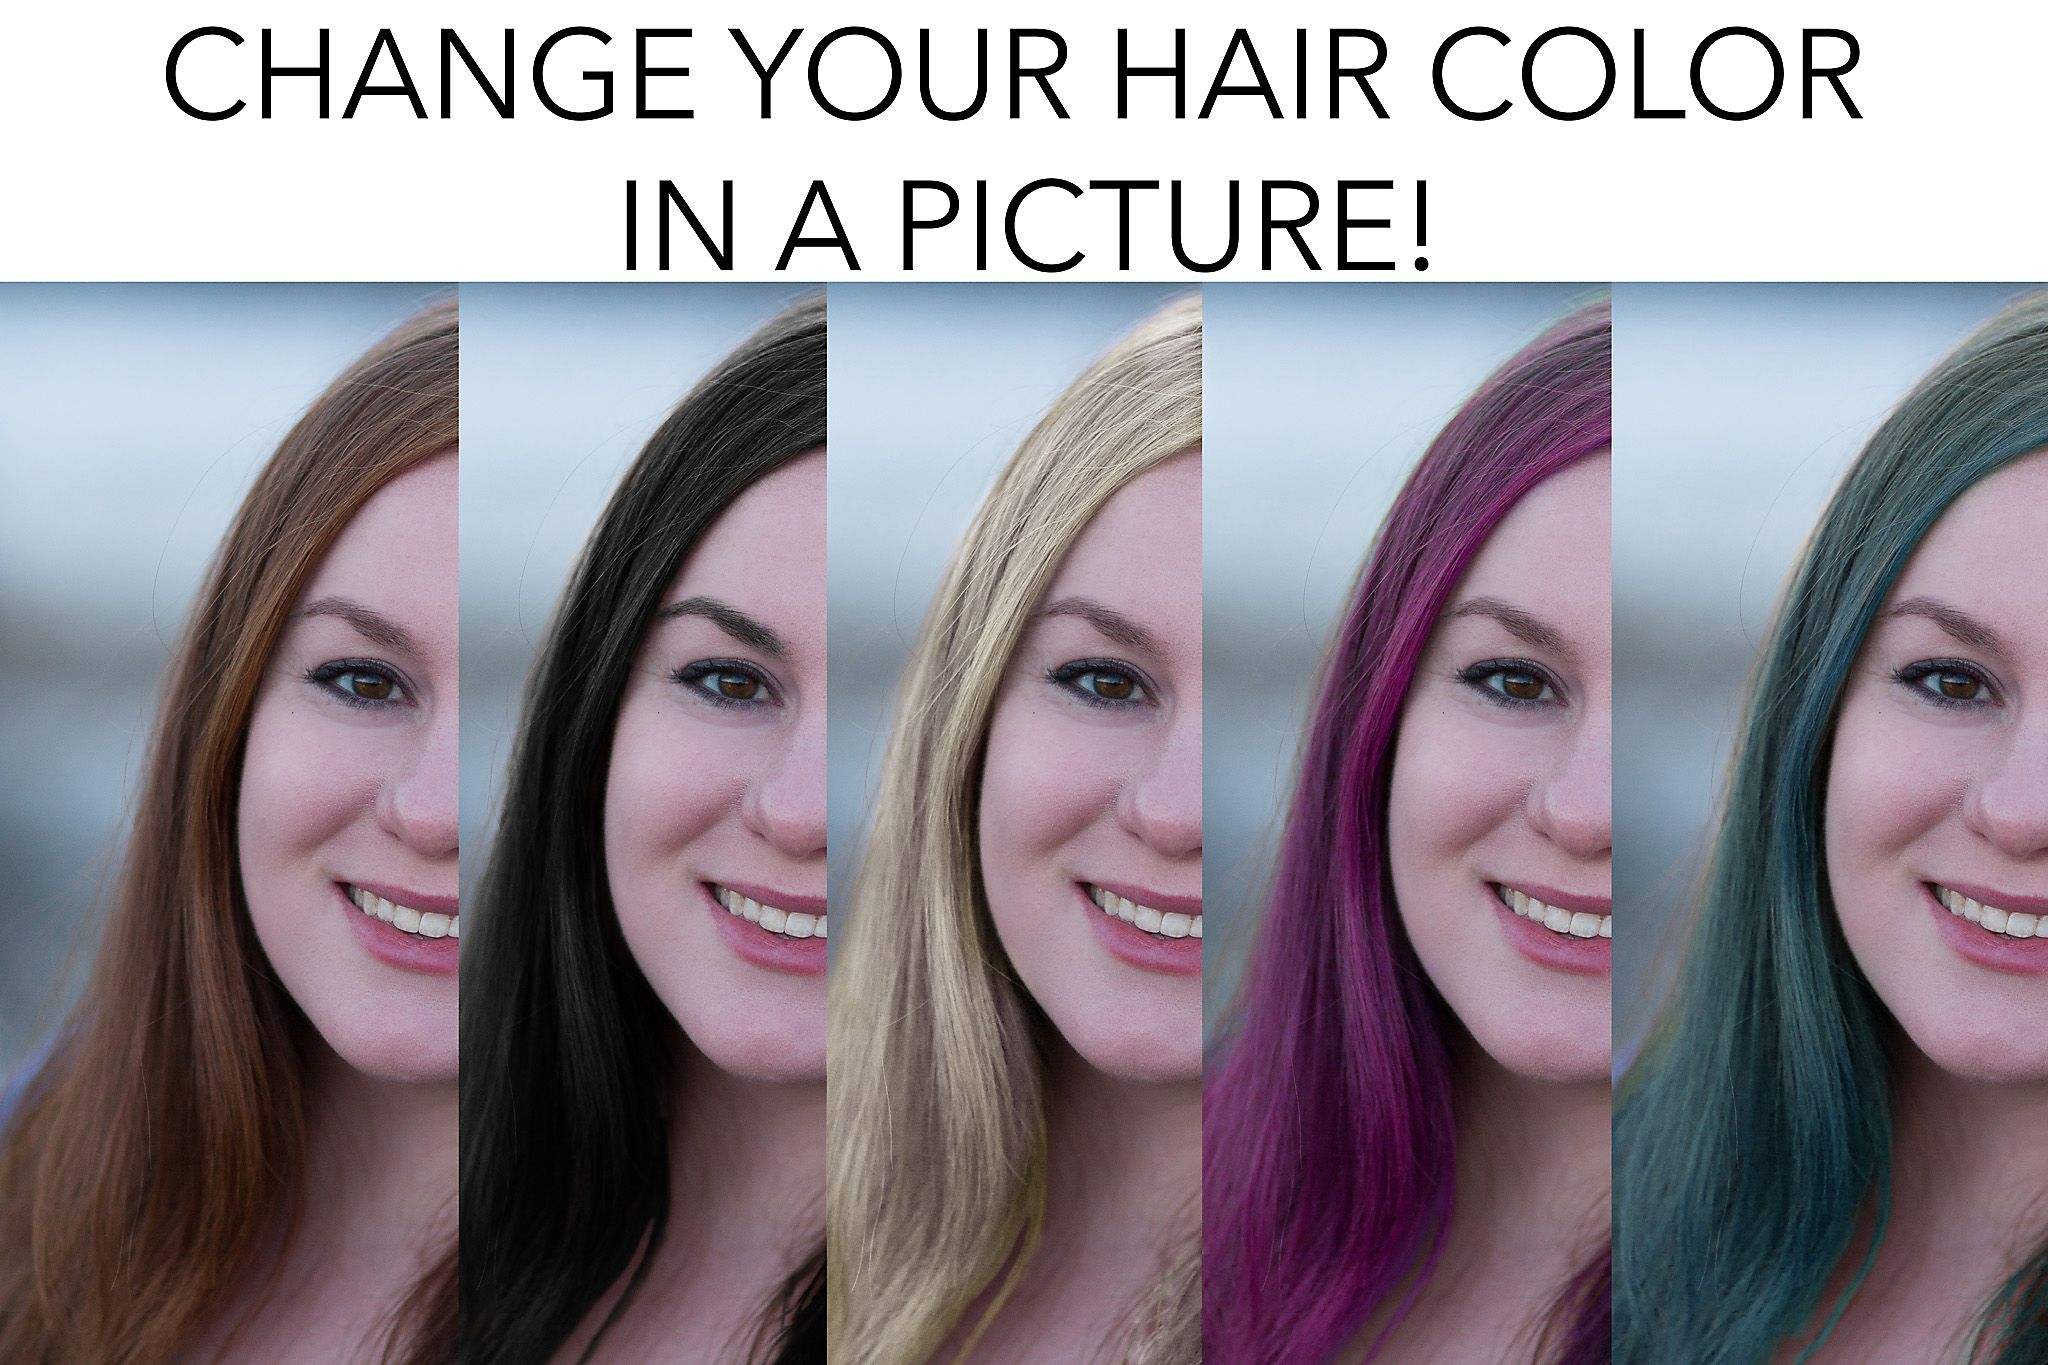 Change Your Hair Color In A Picture Photo Retouching Services